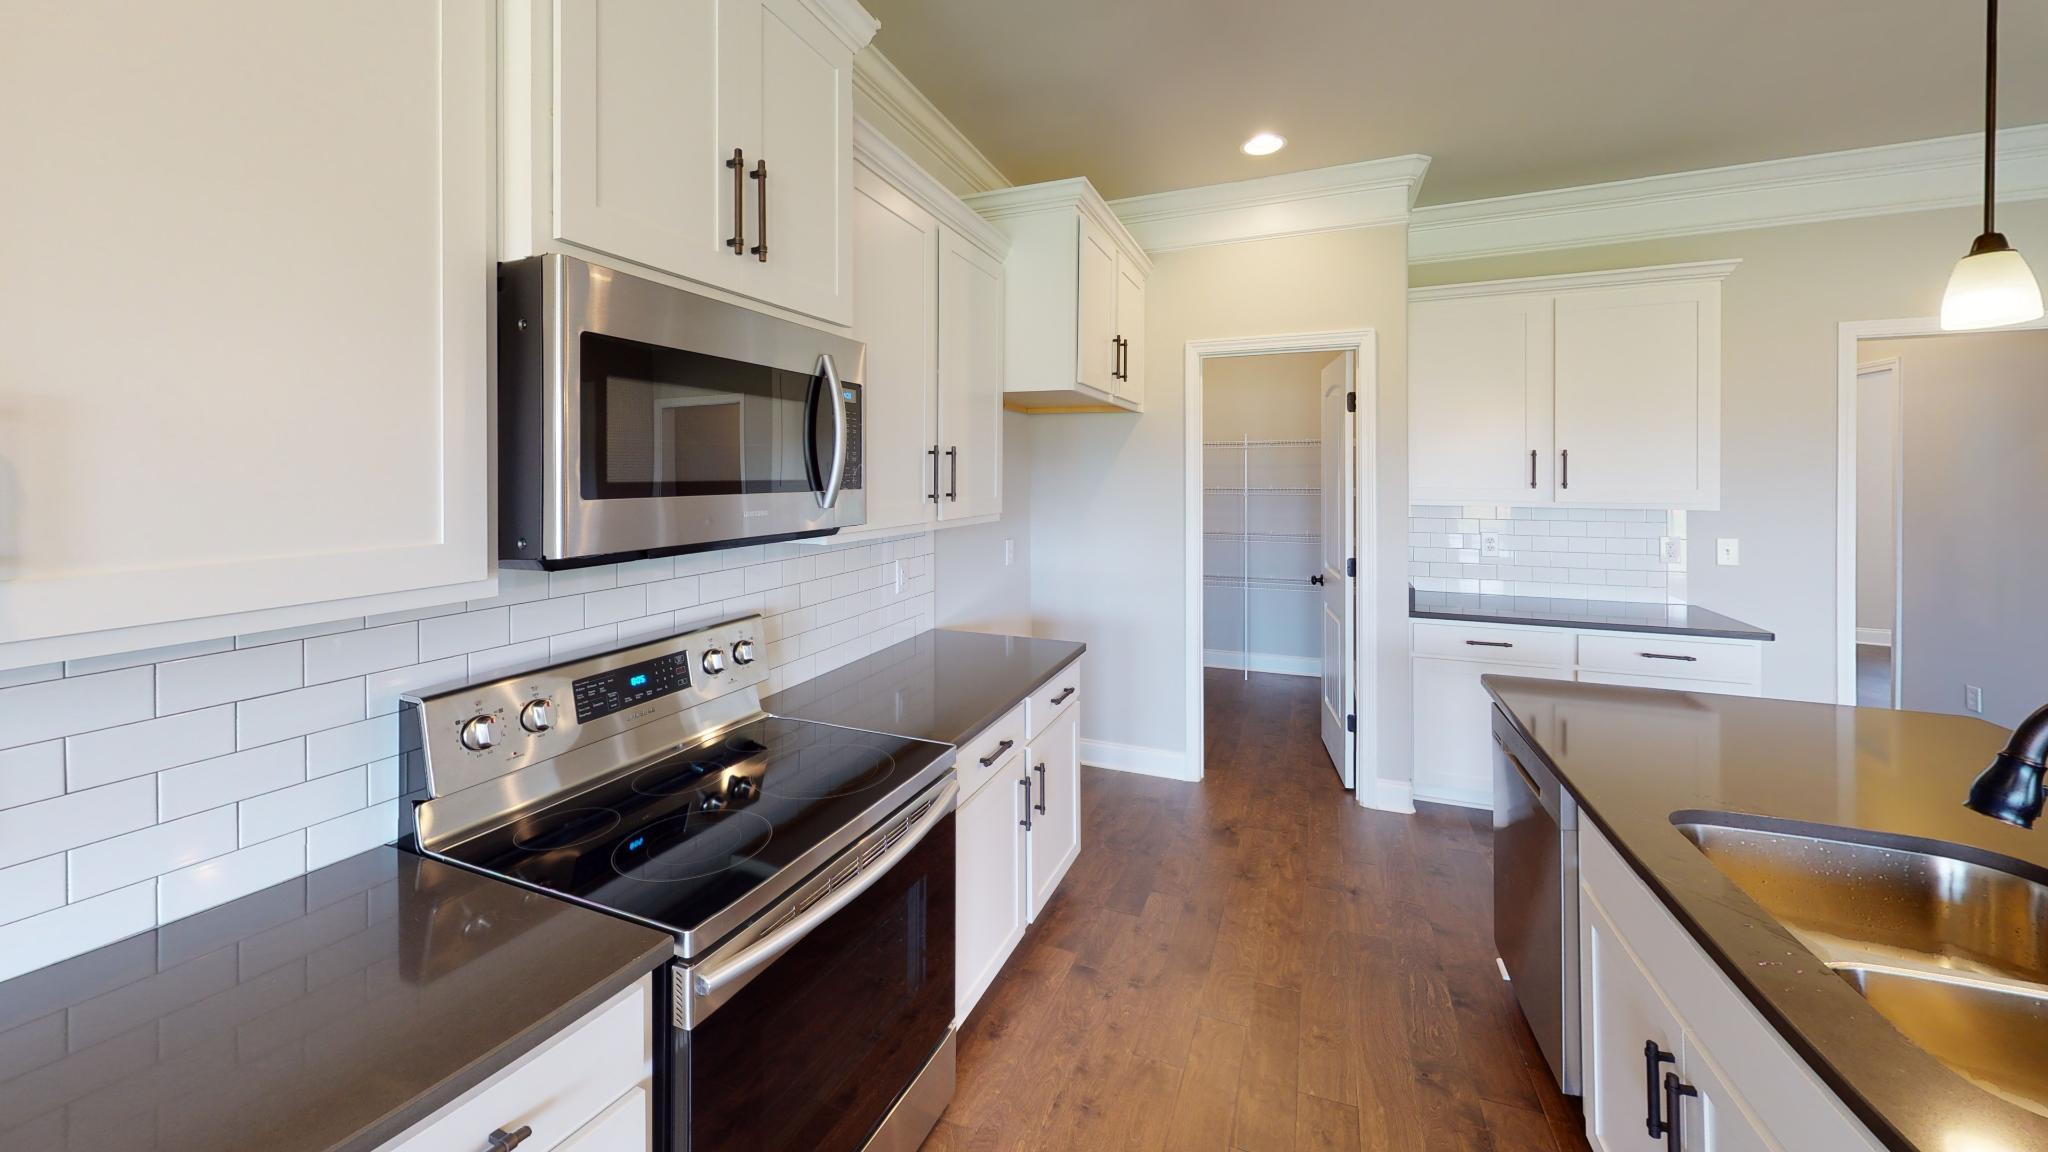 Kitchen featured in the 2591 Premier By Hyde Homes in Huntsville, AL